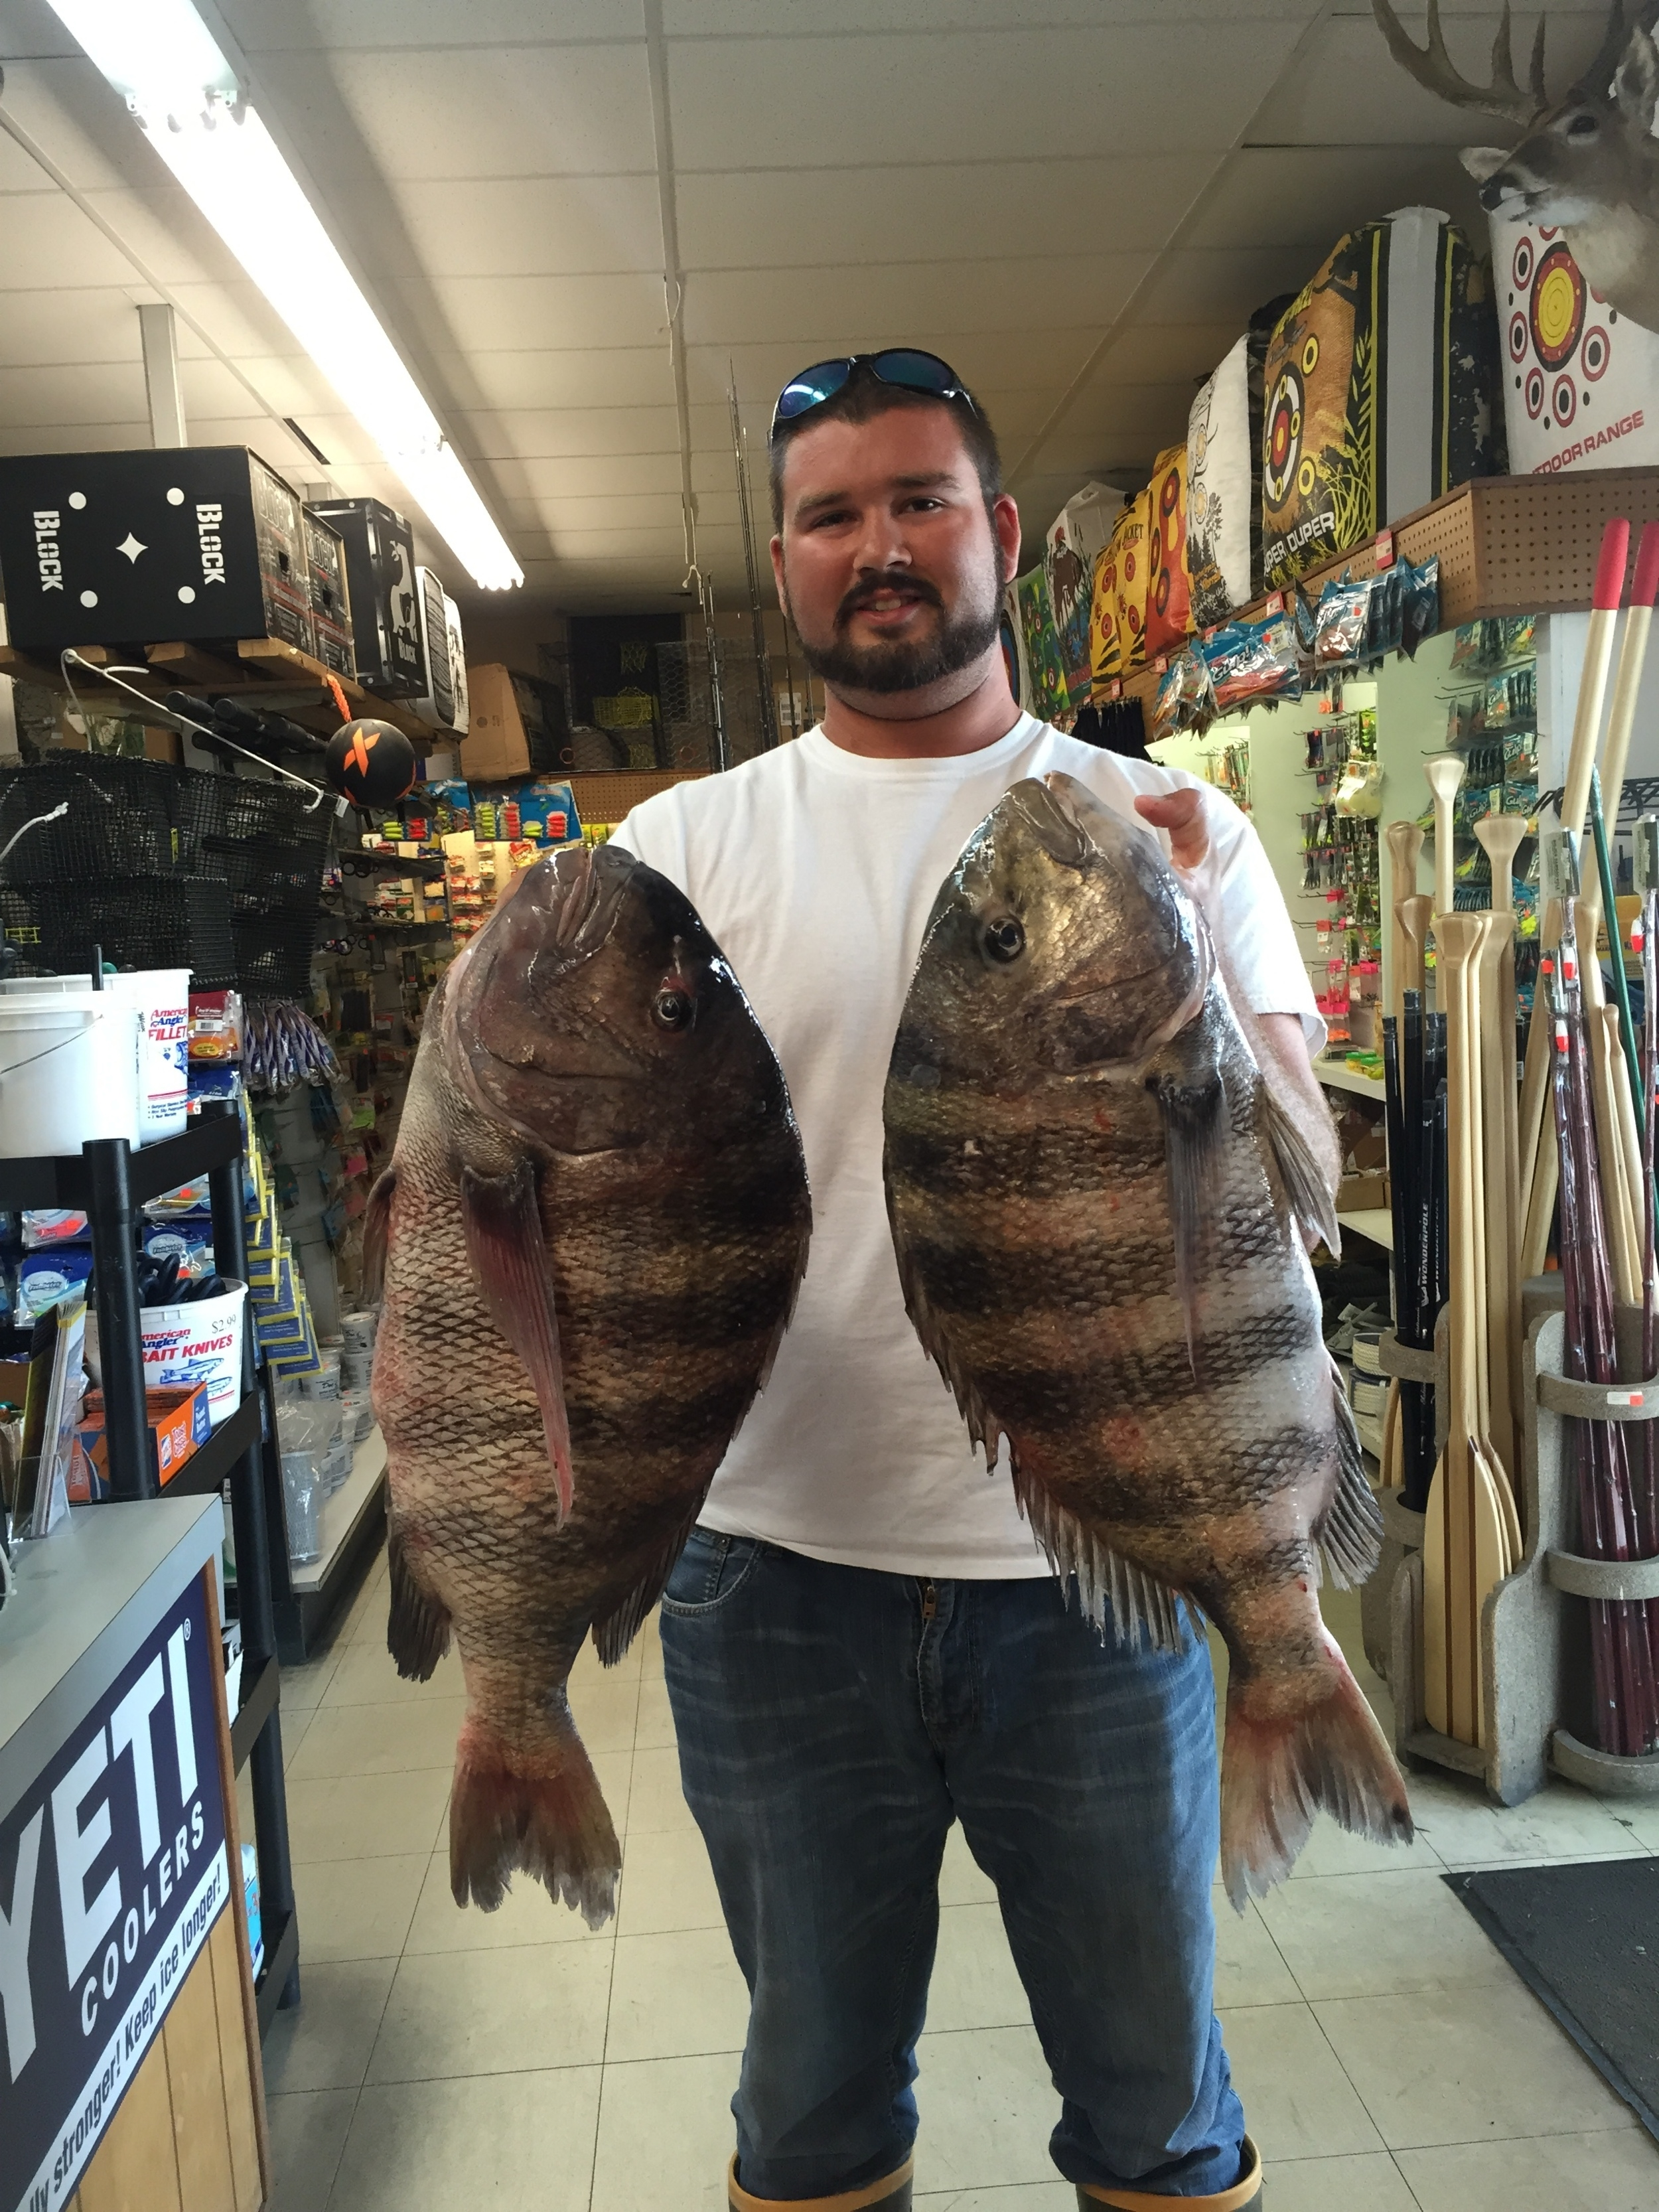 Hunter Southall caught 3 citation Sheephead on 13 Sep 2015 at CBBT. The 2 largest weighting 10.10 and the smallest weighing 10.6. Thanks for bringing them in.